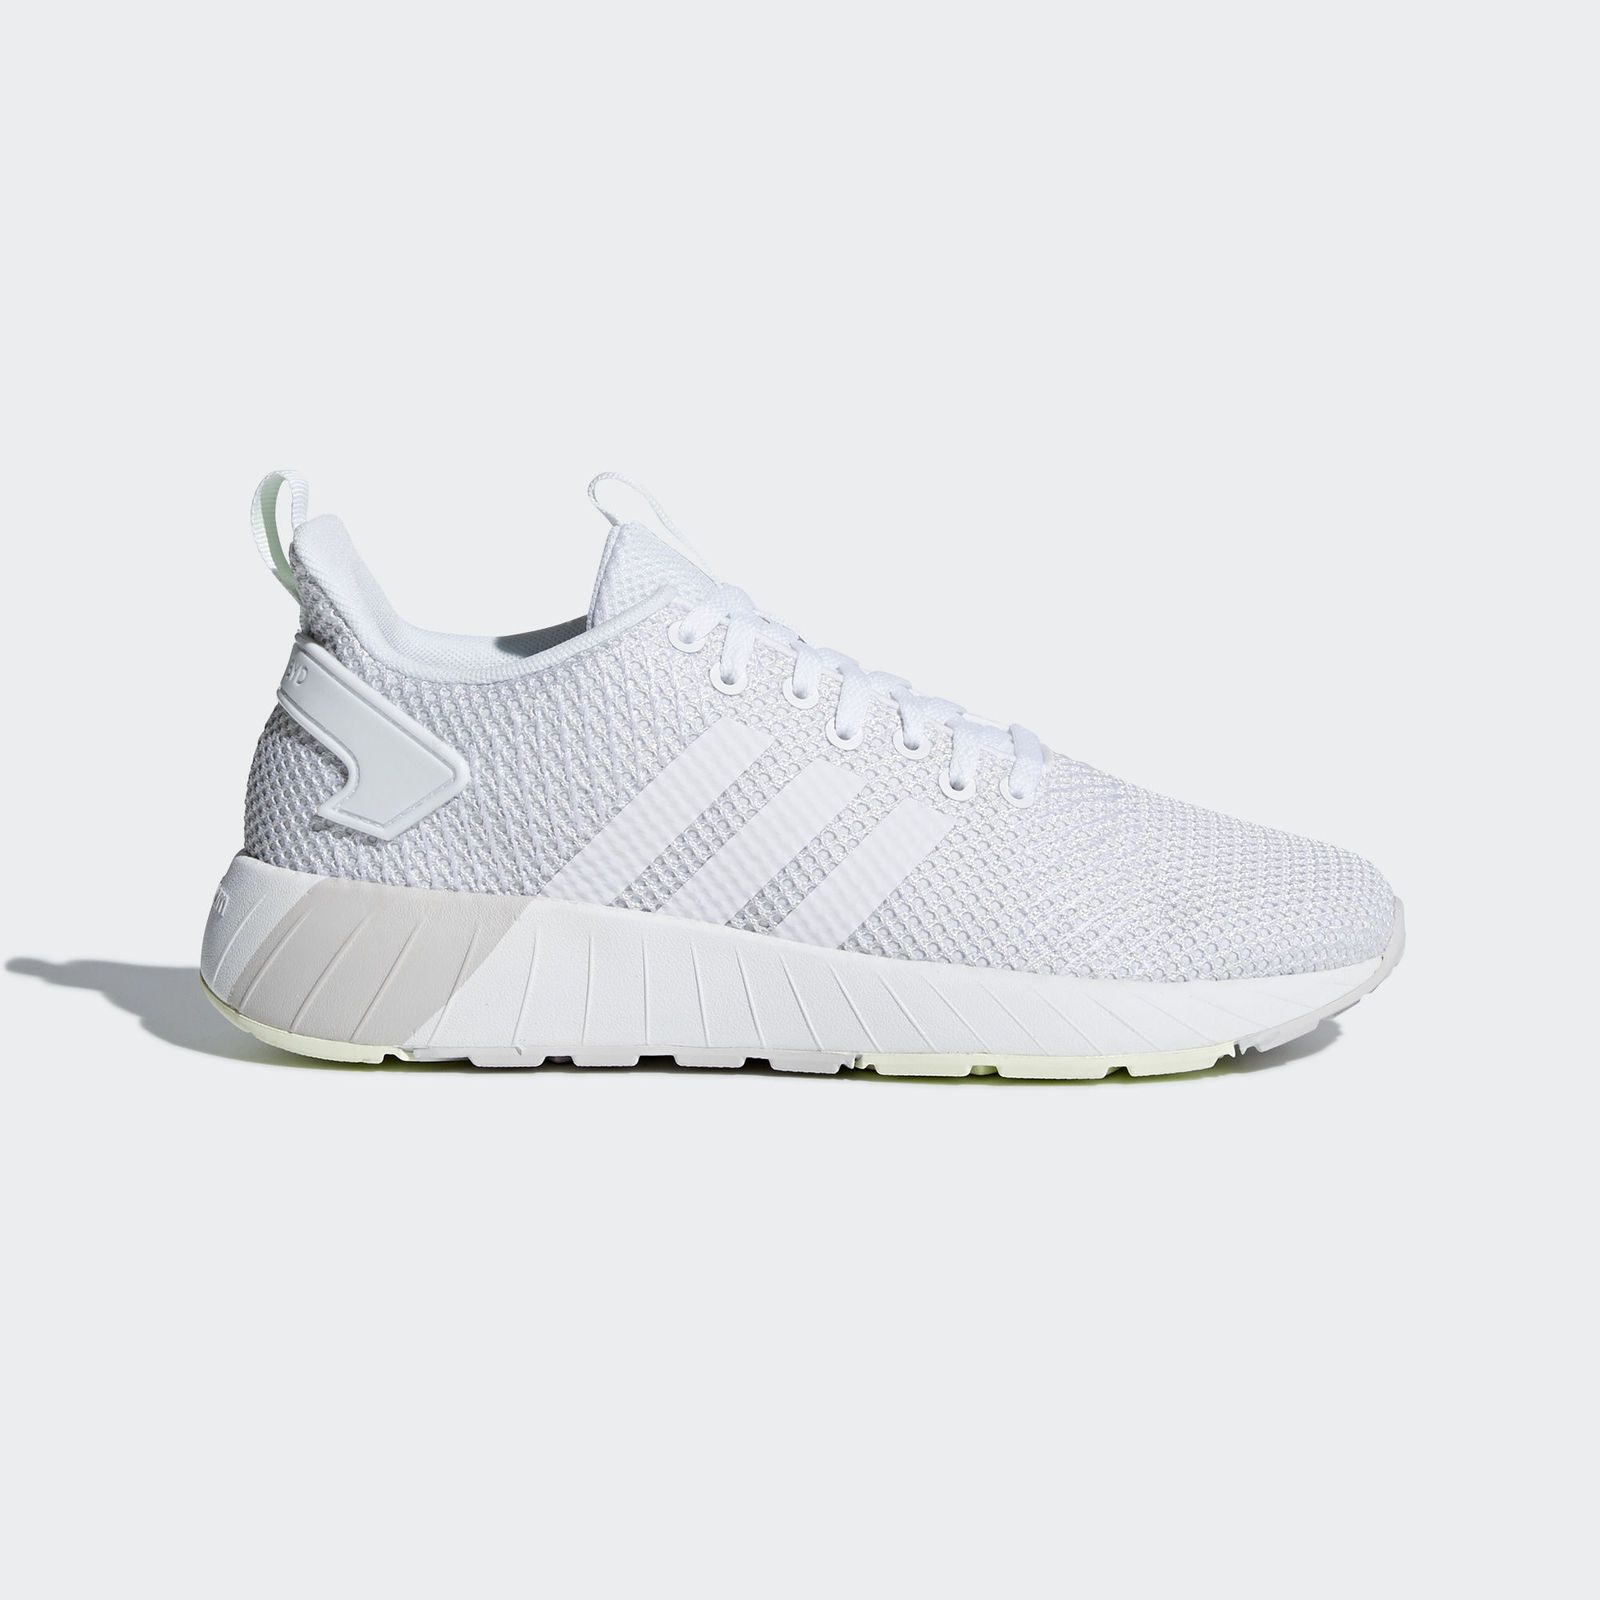 3f049651133 adidas Questar BYD Shoes Women sResilient comfort meets style that s  inspired by speed. These girls  shoes go beyond the ordinary with a  two-tone mesh upper ...